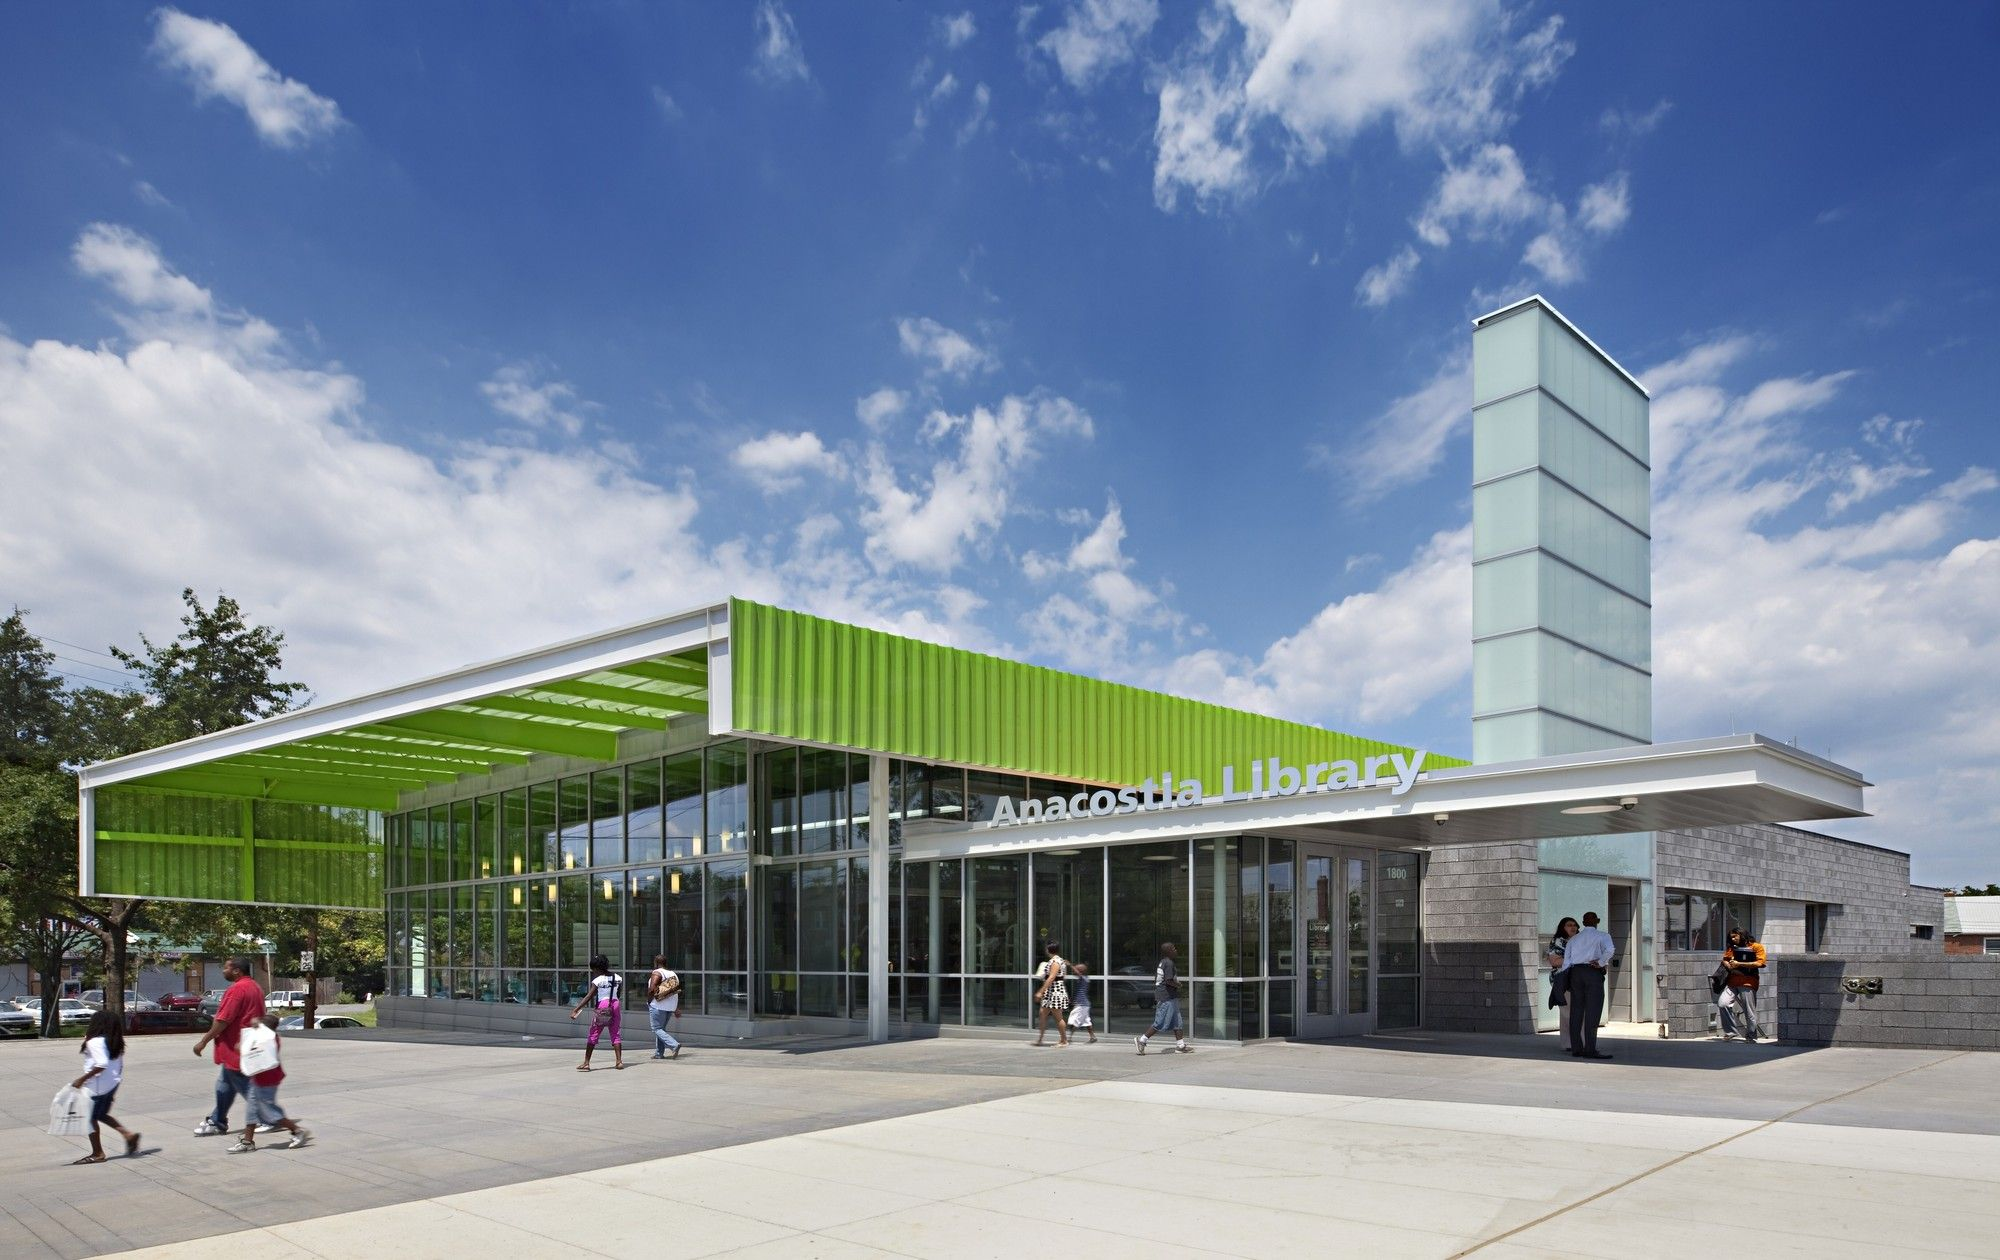 2013 Aia Ala Library Building Awards Announced Library